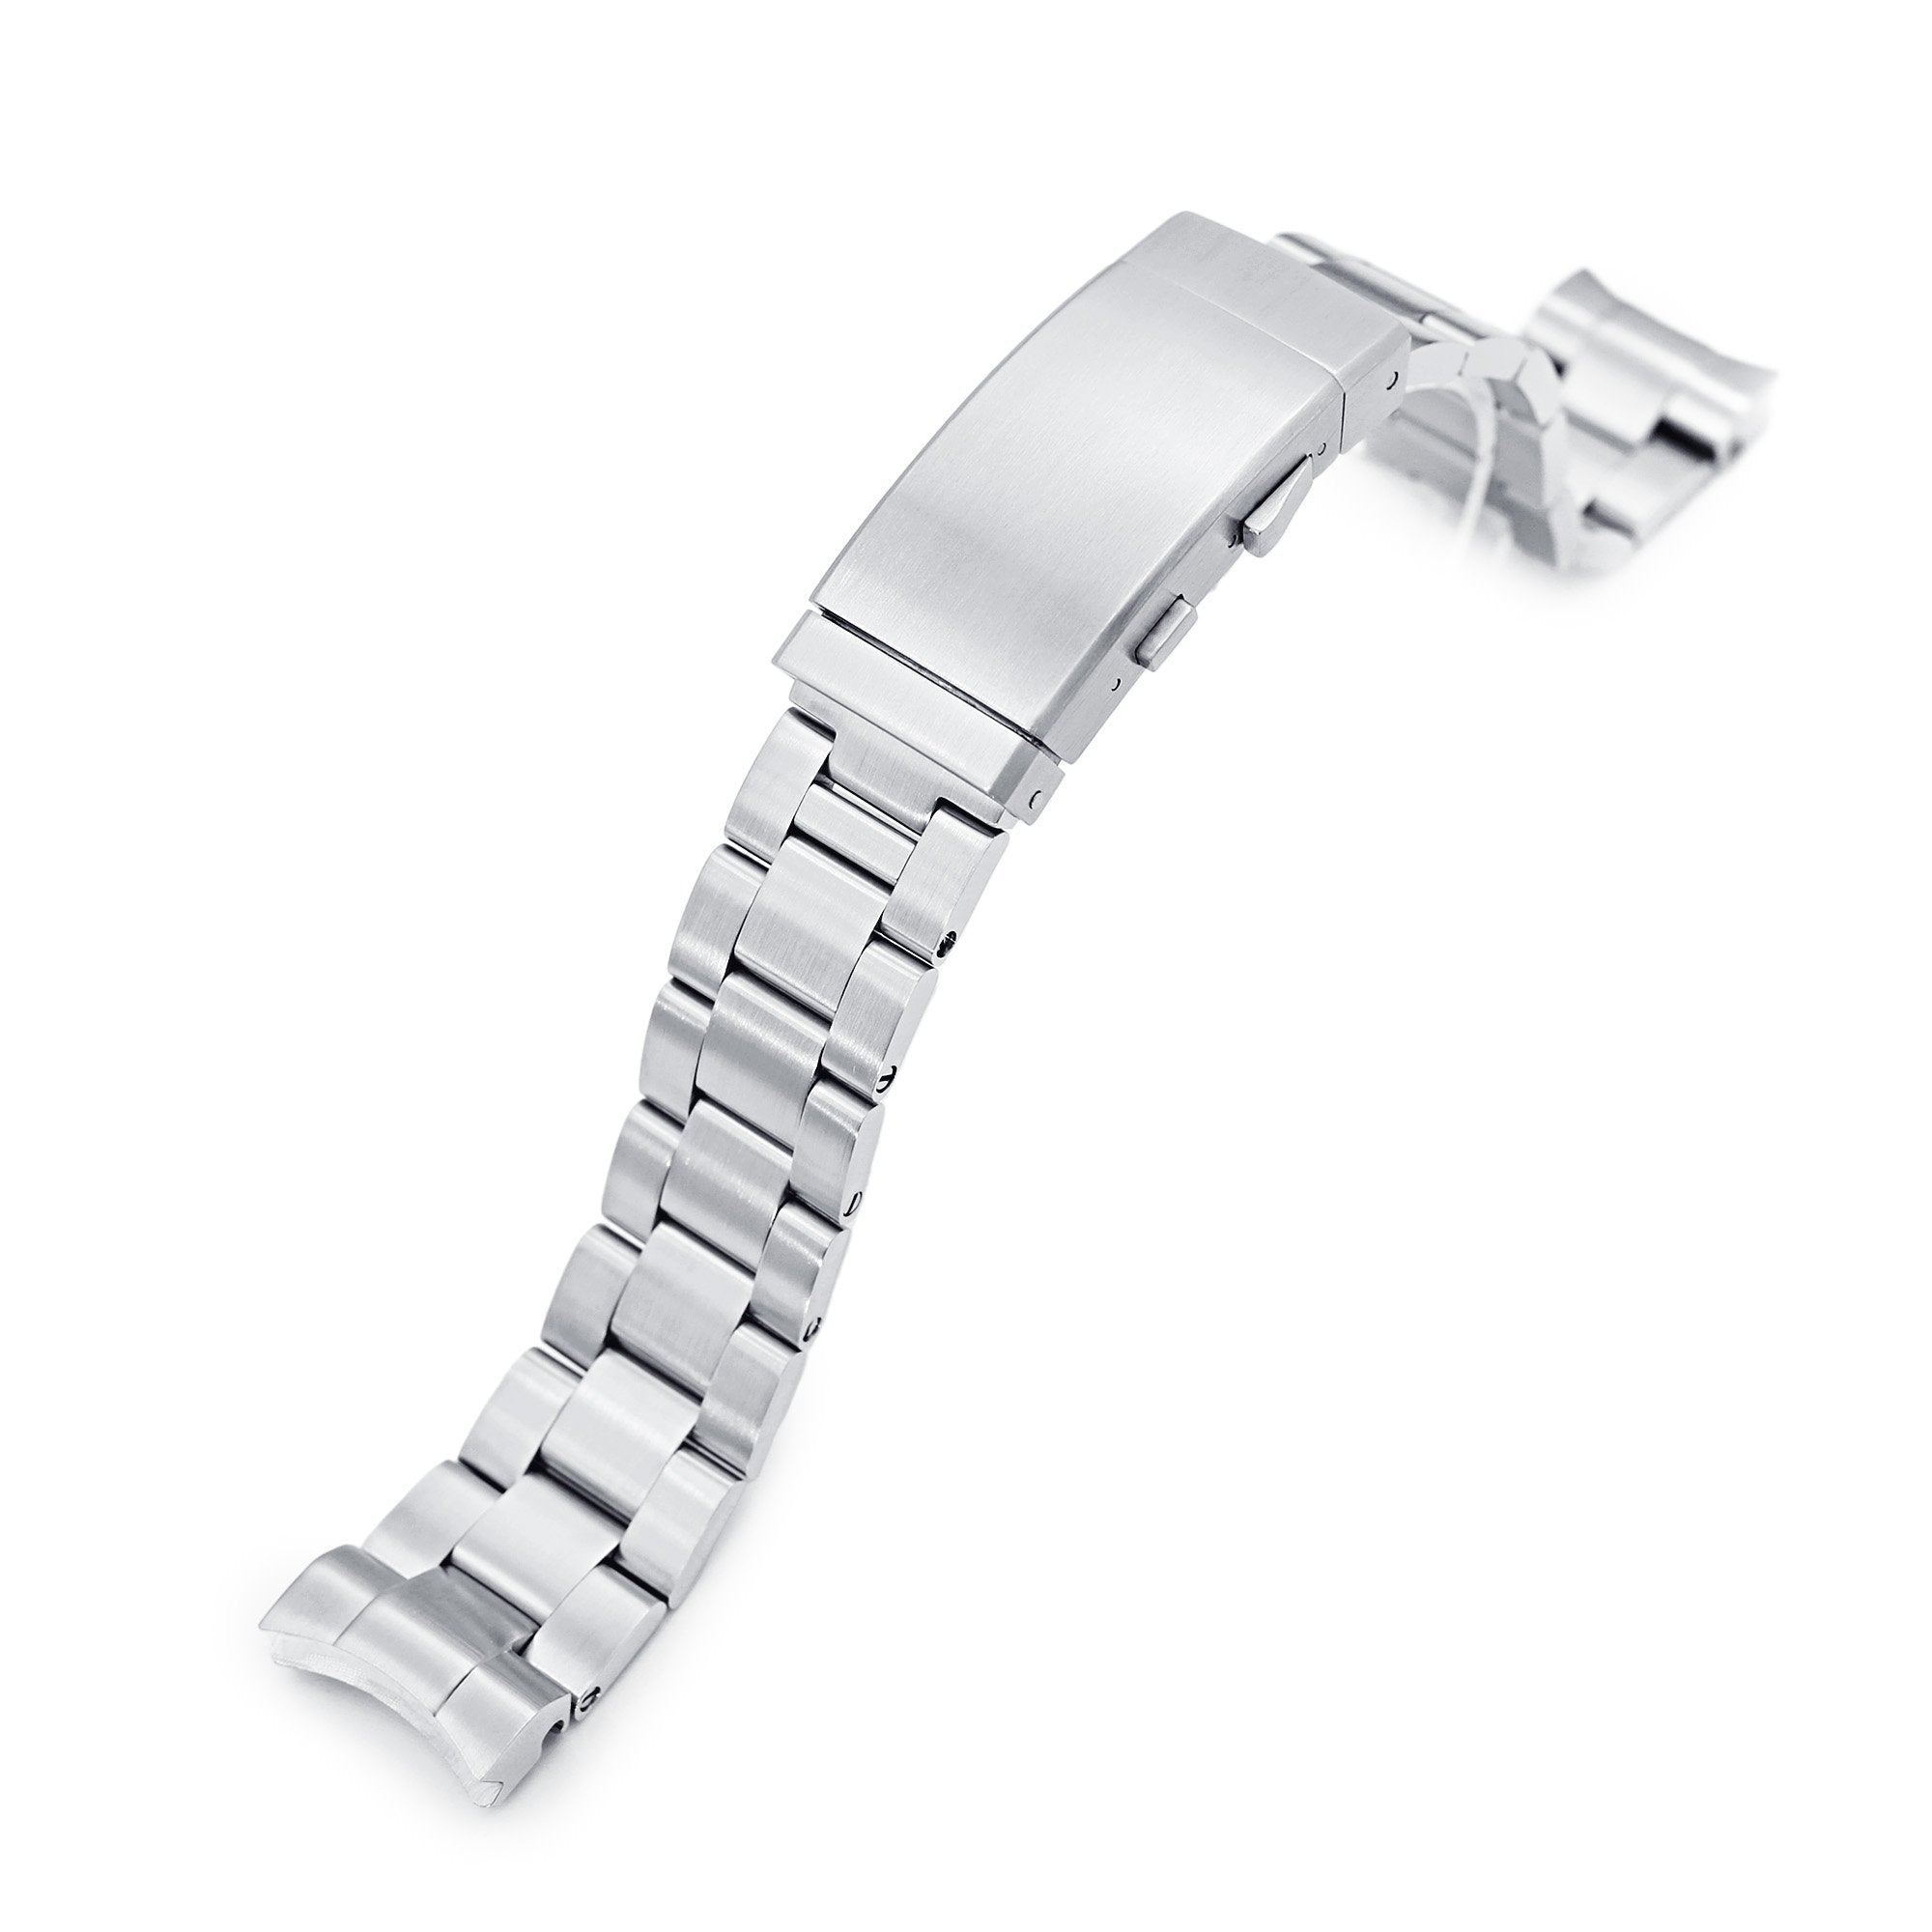 20mm Super-O Boyer 316L Stainless Steel Watch Bracelet for Seiko Baby MM 200 Brushed Wetsuit Ratchet Buckle Strapcode Watch Bands